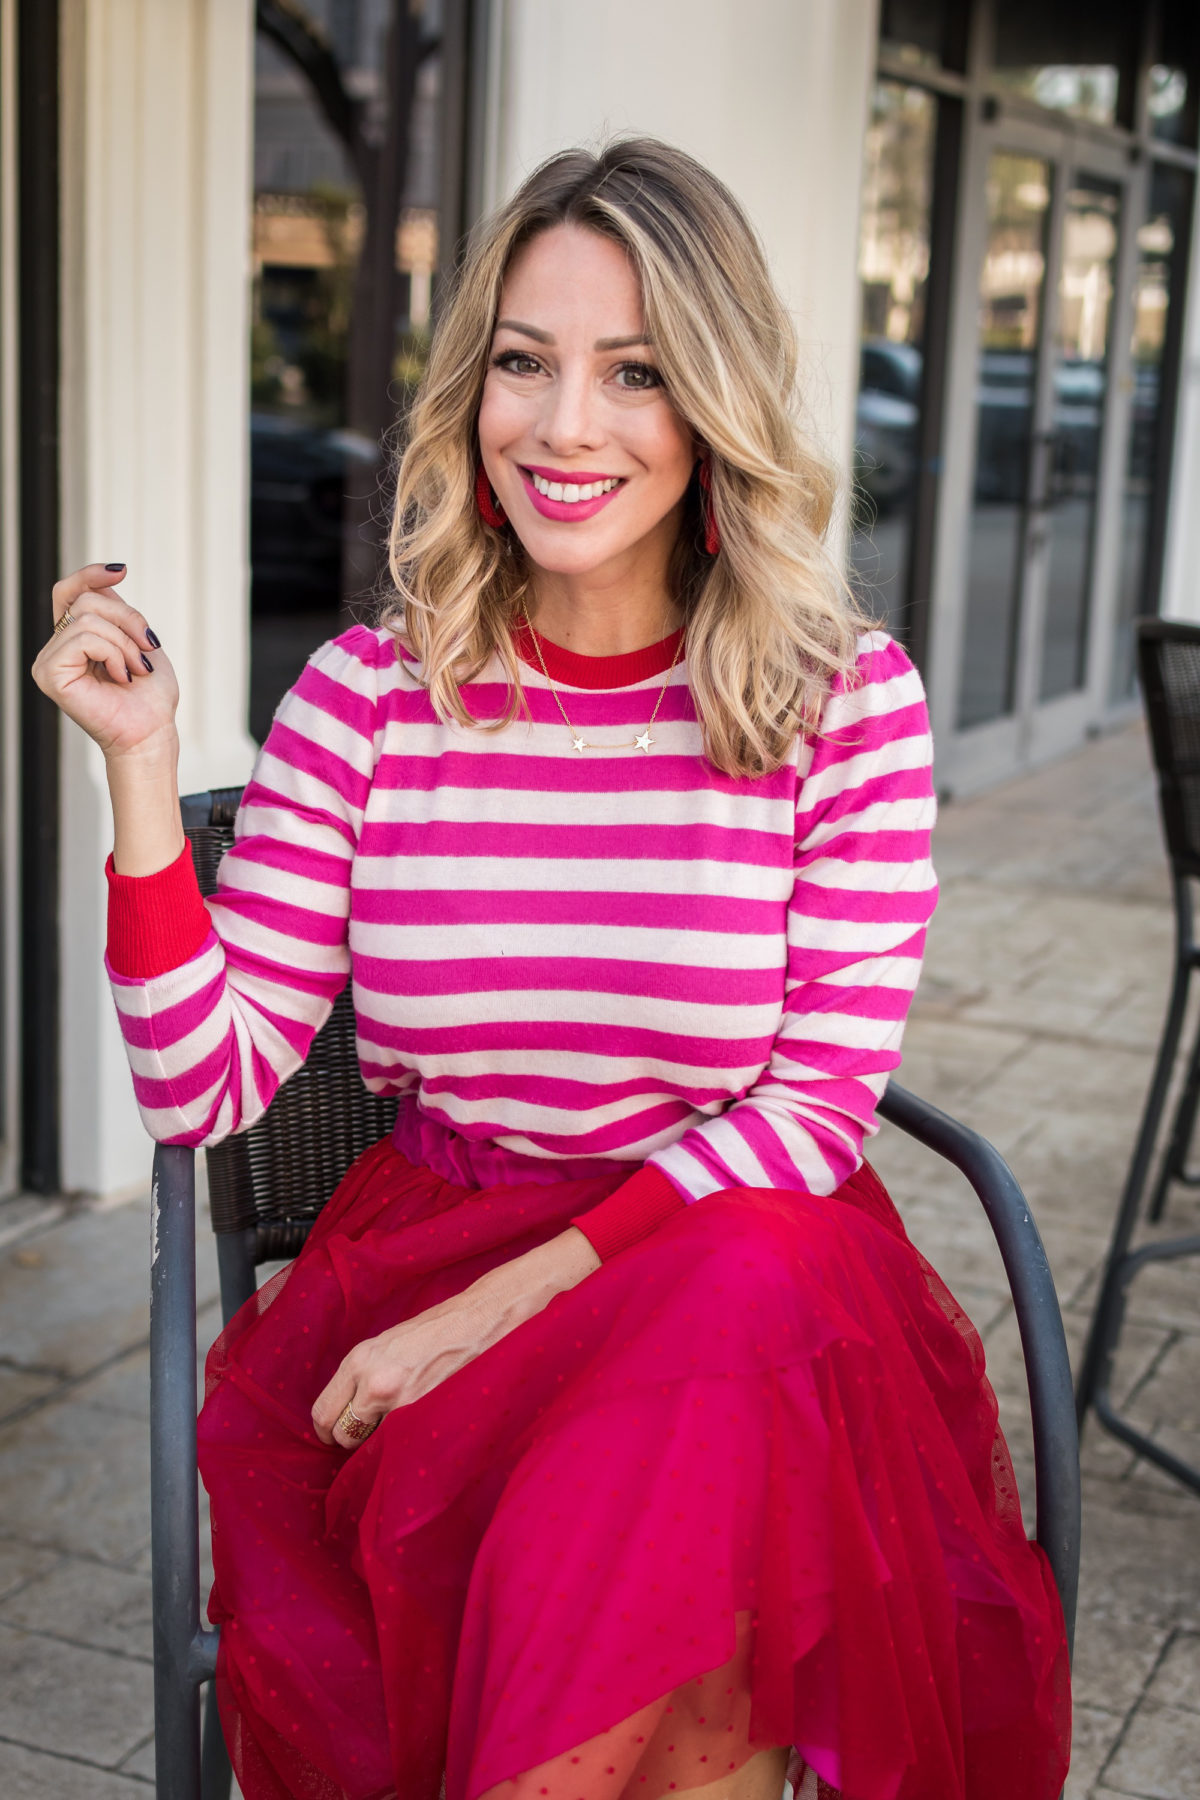 Gibson Fashion, Striped Sweater, Tulle Skirt